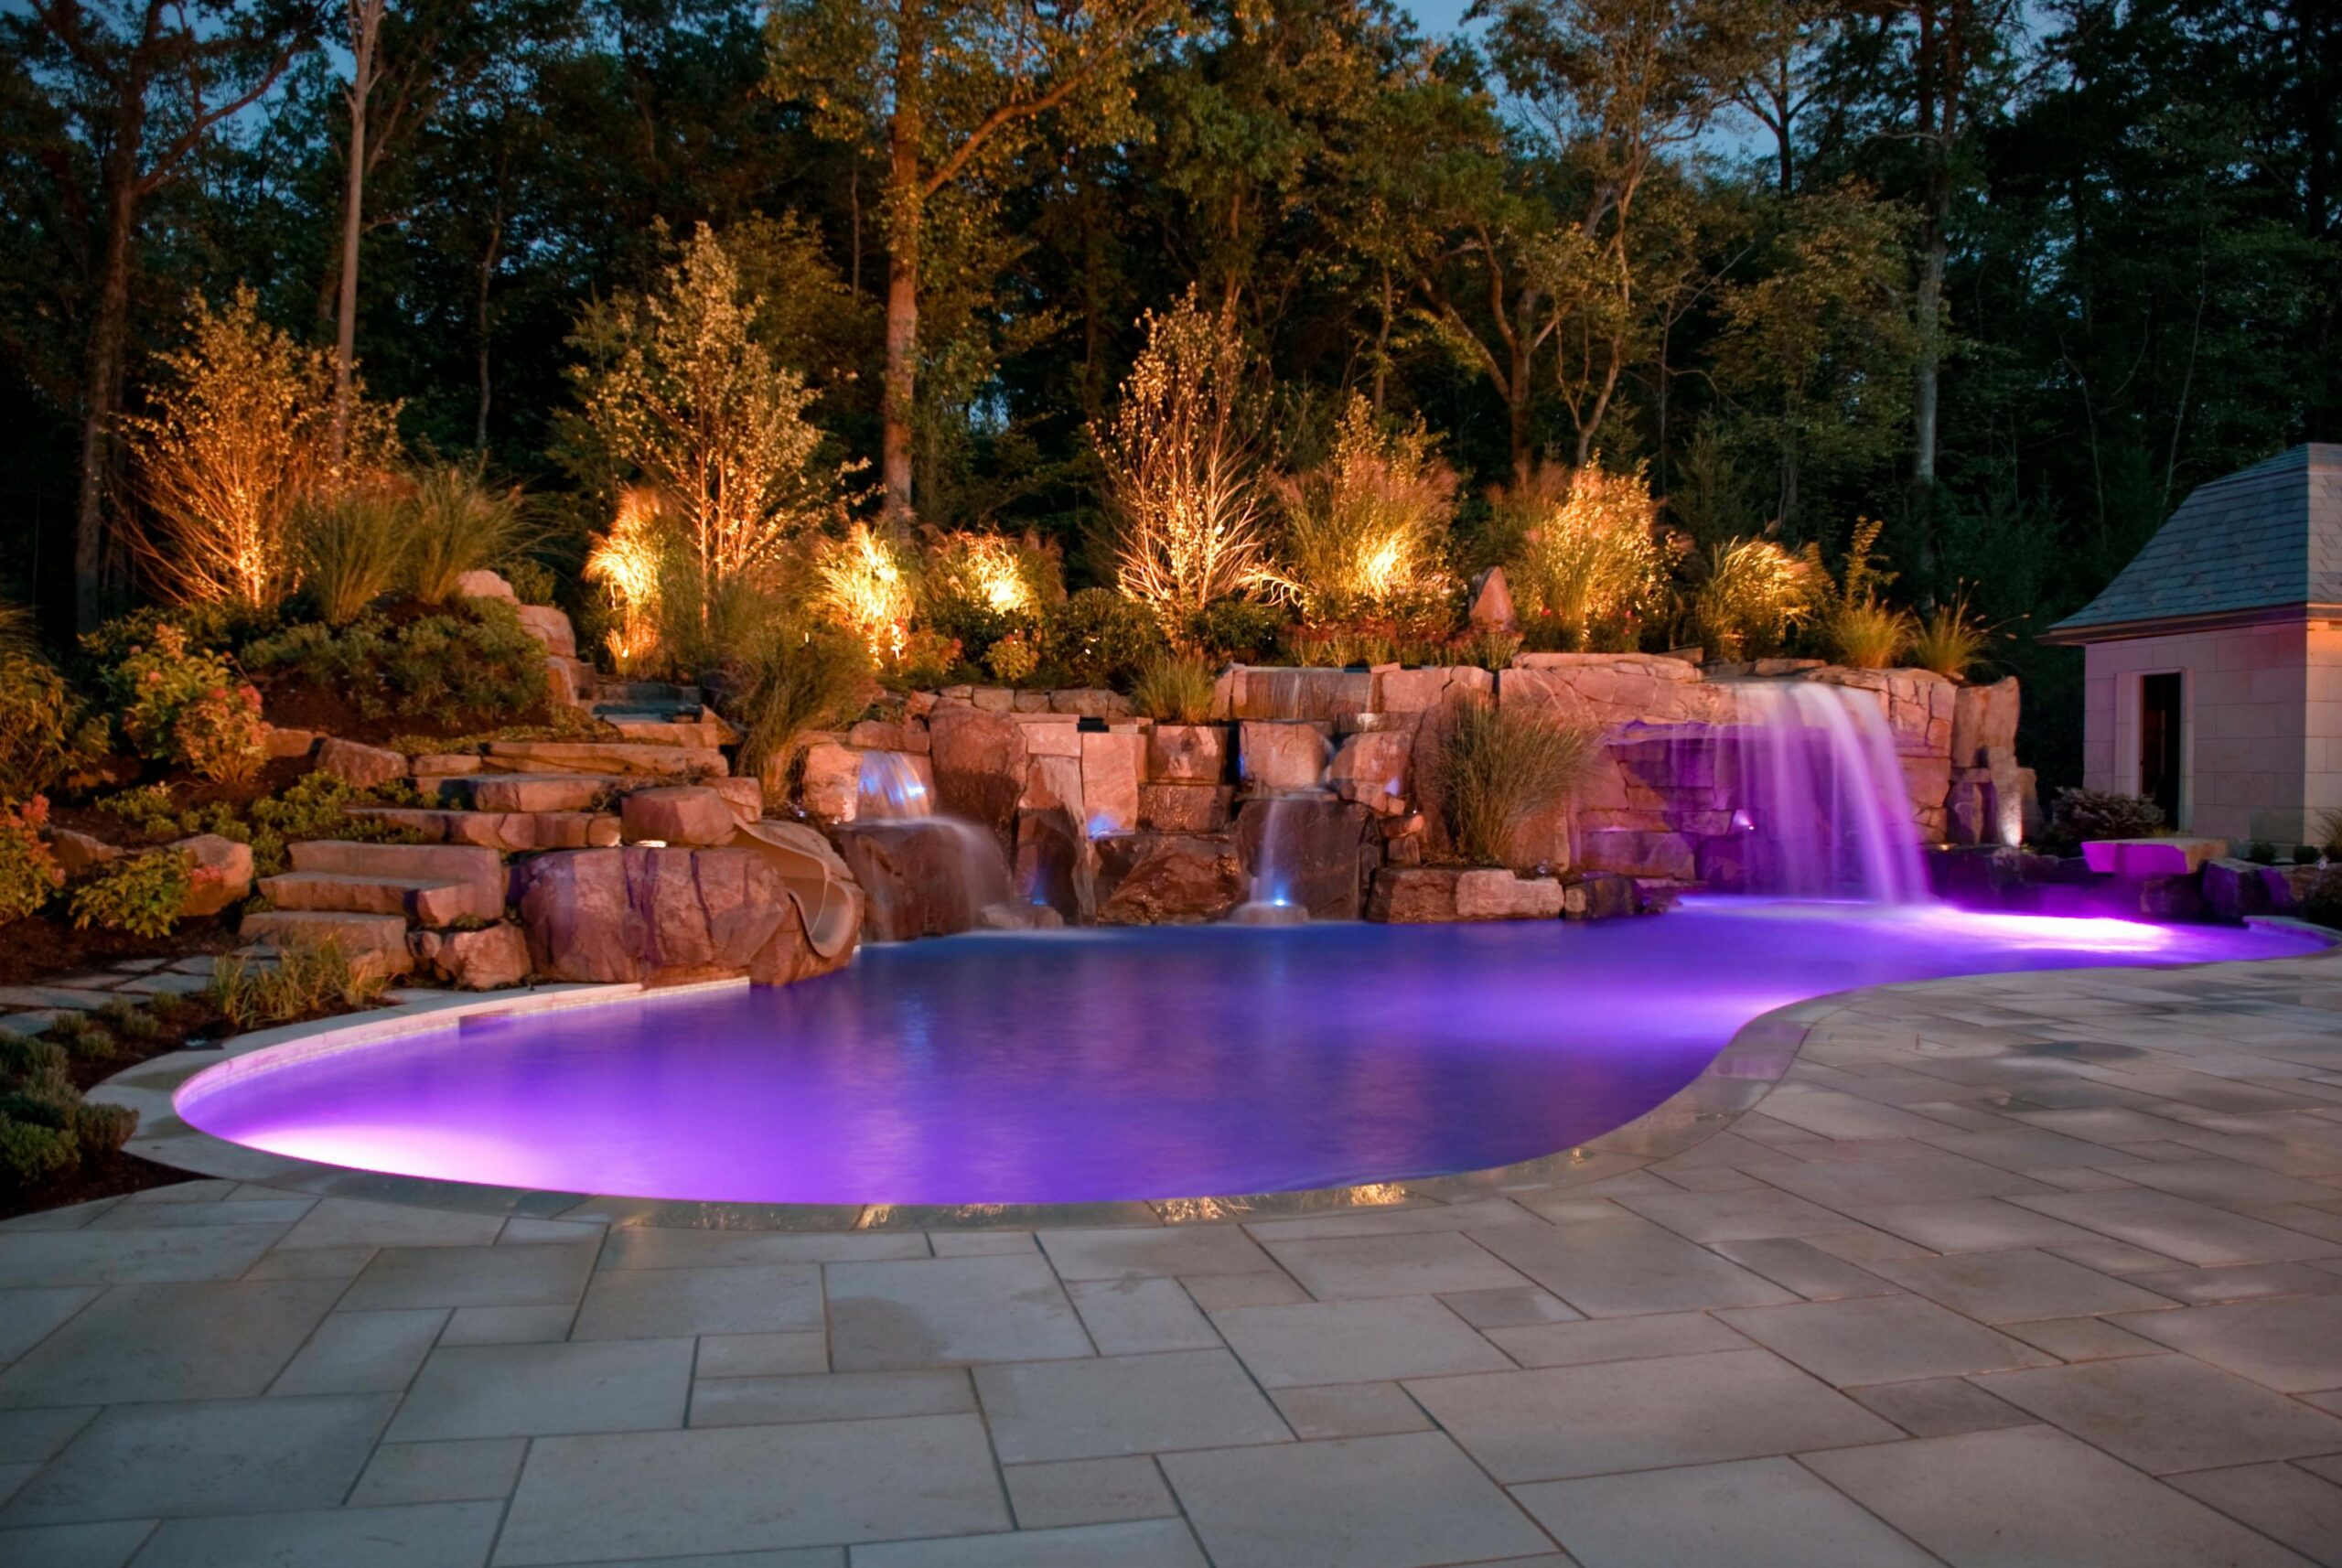 Backyard Pool Designs Landscaping Pools - Landscape Ideas - pool landscaping ideas new jersey